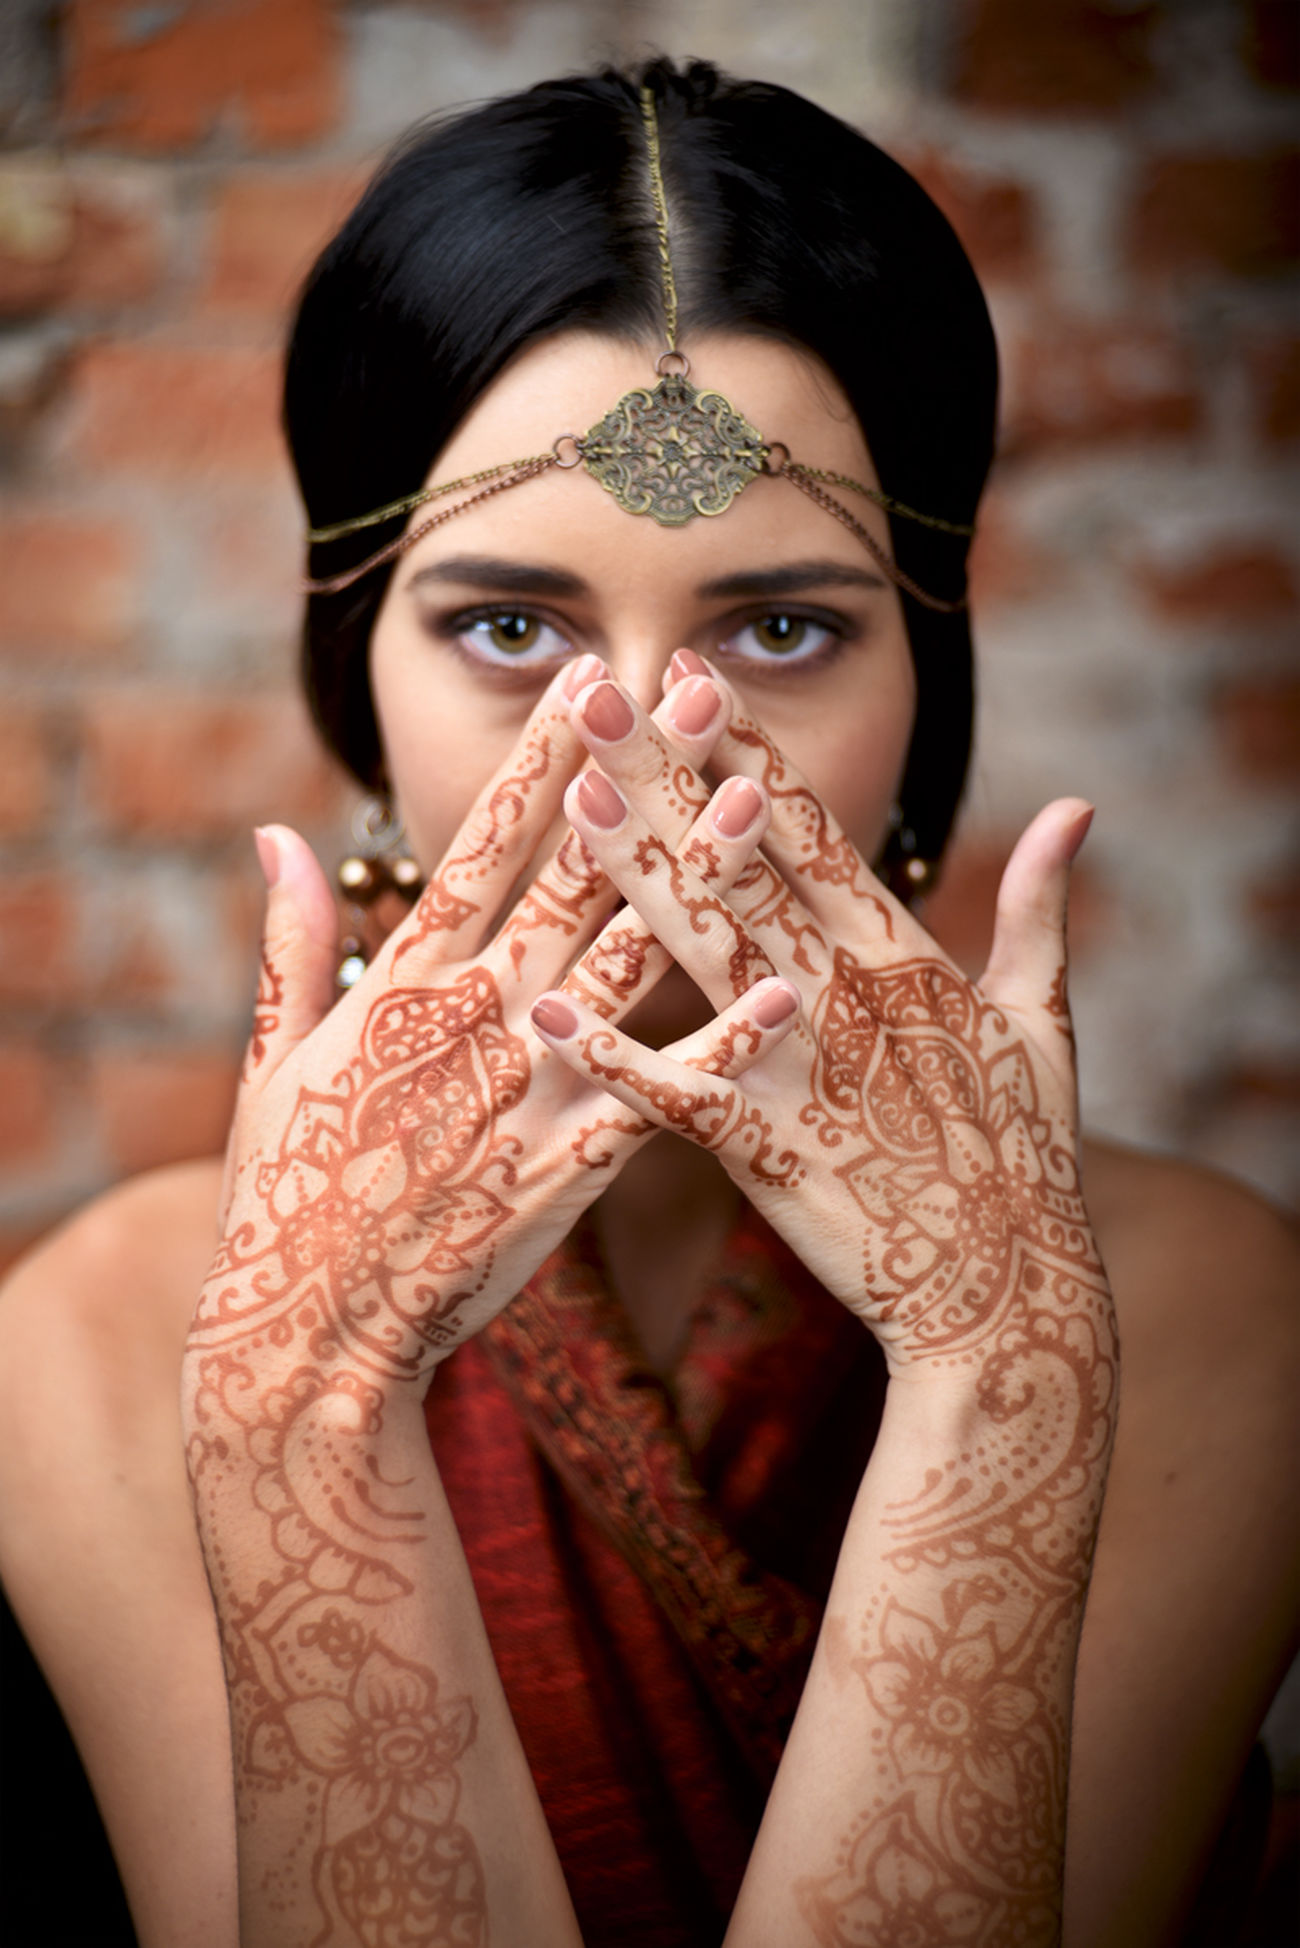 Indian, One Woman Only Human Body Part Portrait Human Hand Looking At Camera Young Adult Adult Ring Adults Only Only Women Arts Culture And Entertainment Human Finger One Person One Young Woman Only People Beautiful People Beautiful Woman Women Beauty Young Women